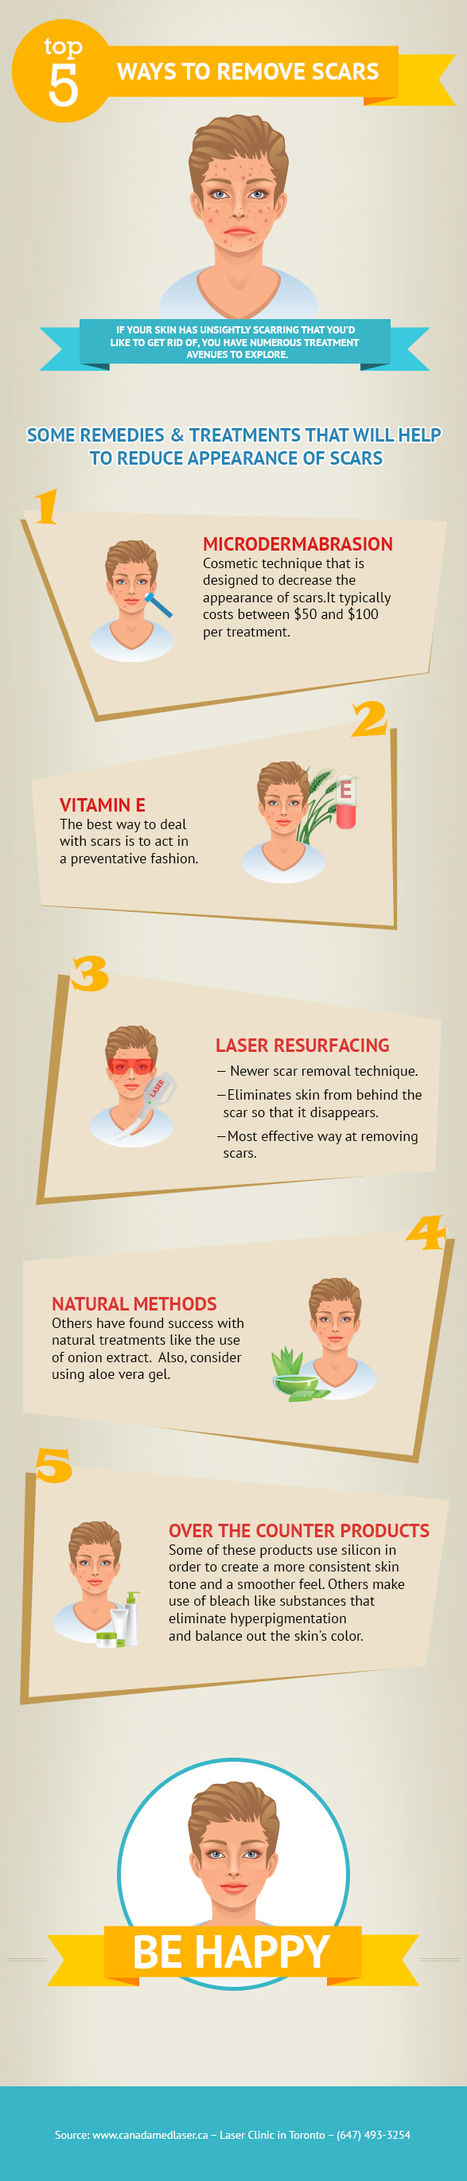 5 Effective Ways to Remove Scars | Canada Med Laser | News | Scoop.it